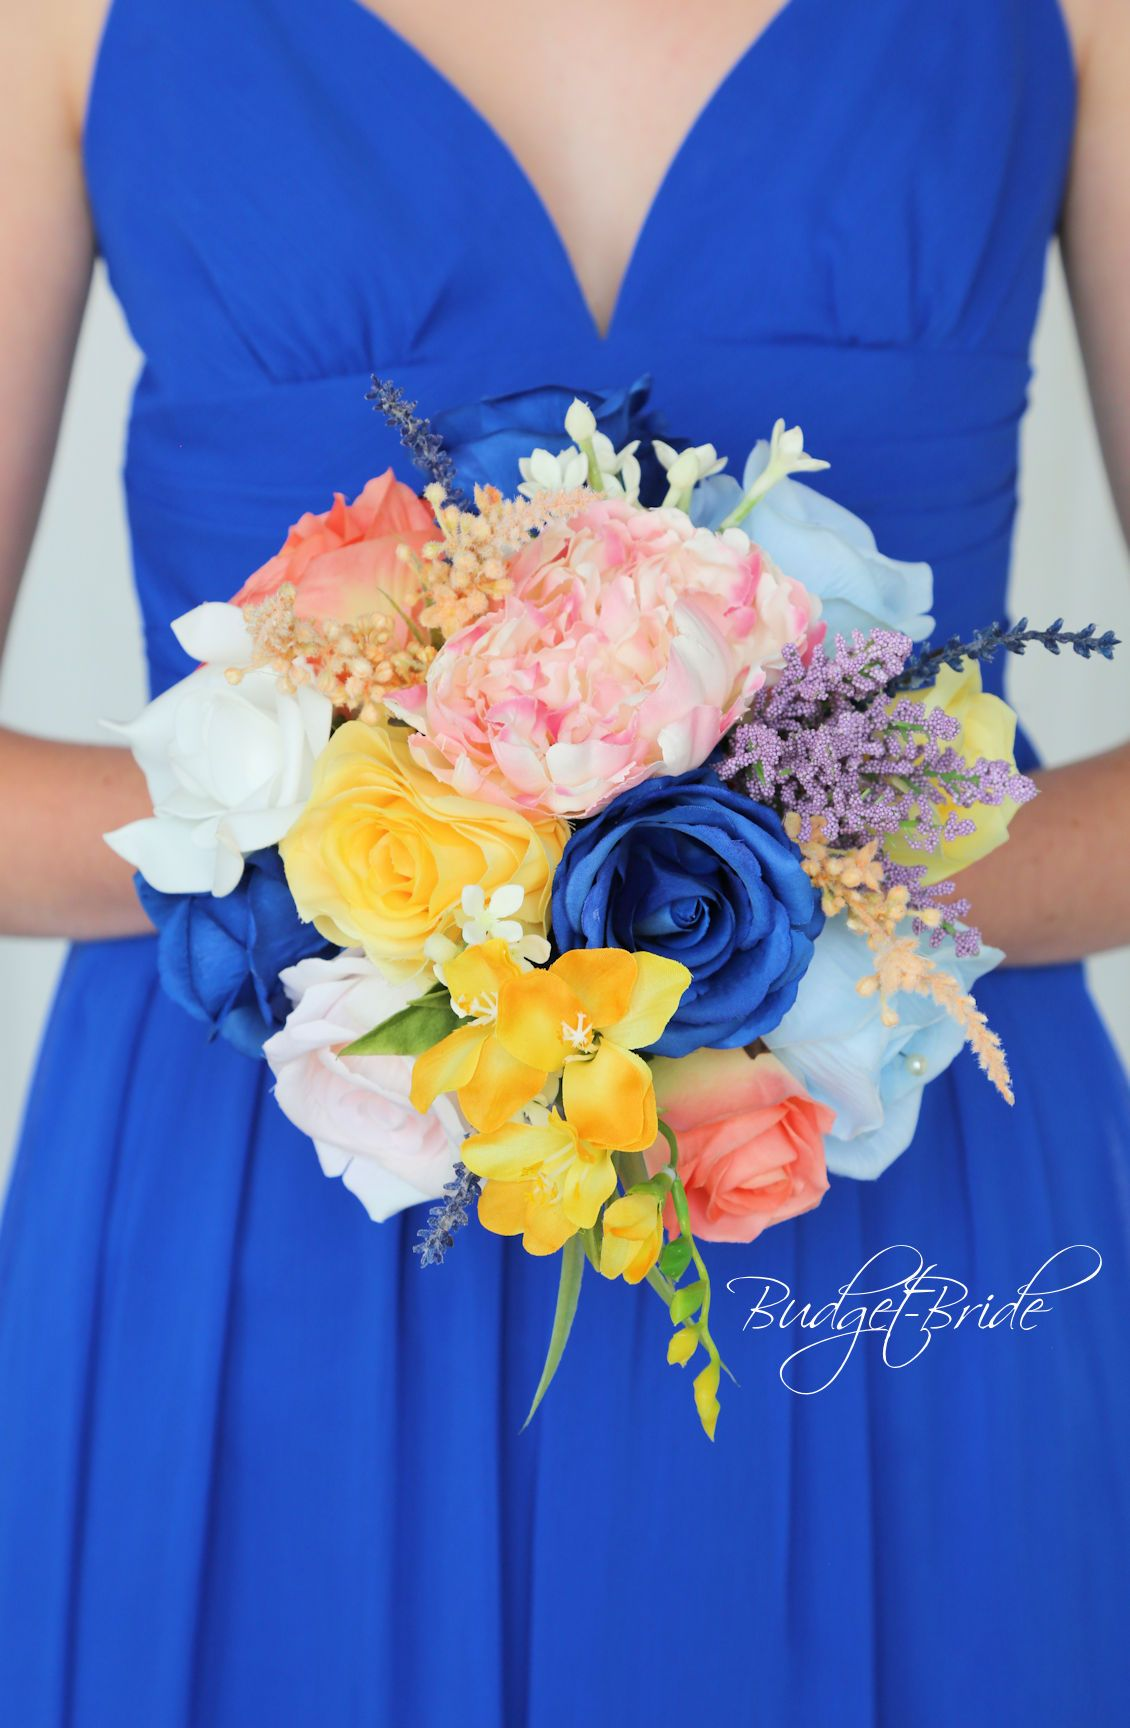 ba494af1d4 Davids Bridal Wildflower Horizon Wedding Bouquet with yellow